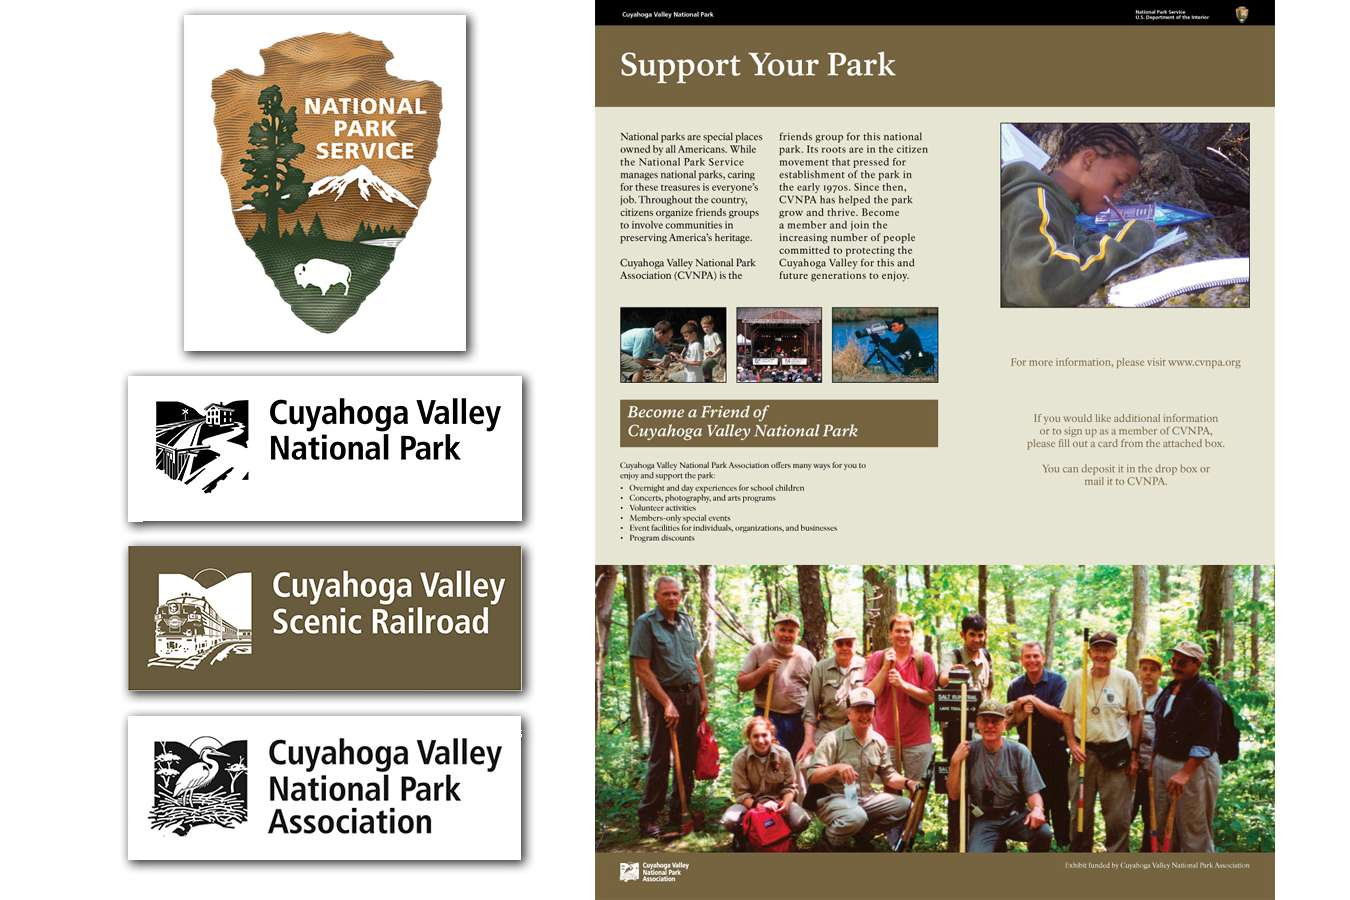 CUVANPS8 : Logos developed for the Cuyahoga Valley National Park, Association and Scenic Railroad